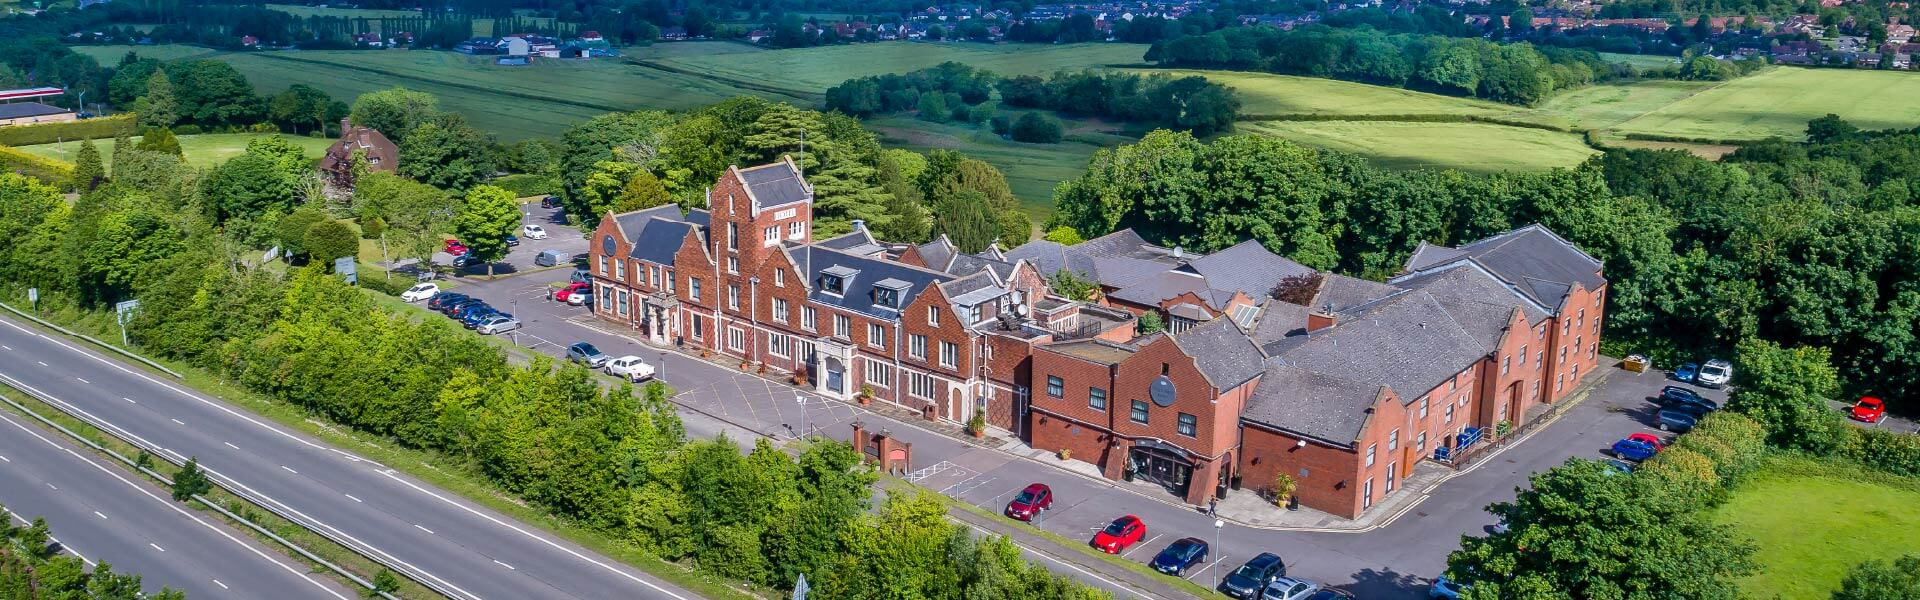 The hogs back hotel & spa Surrey